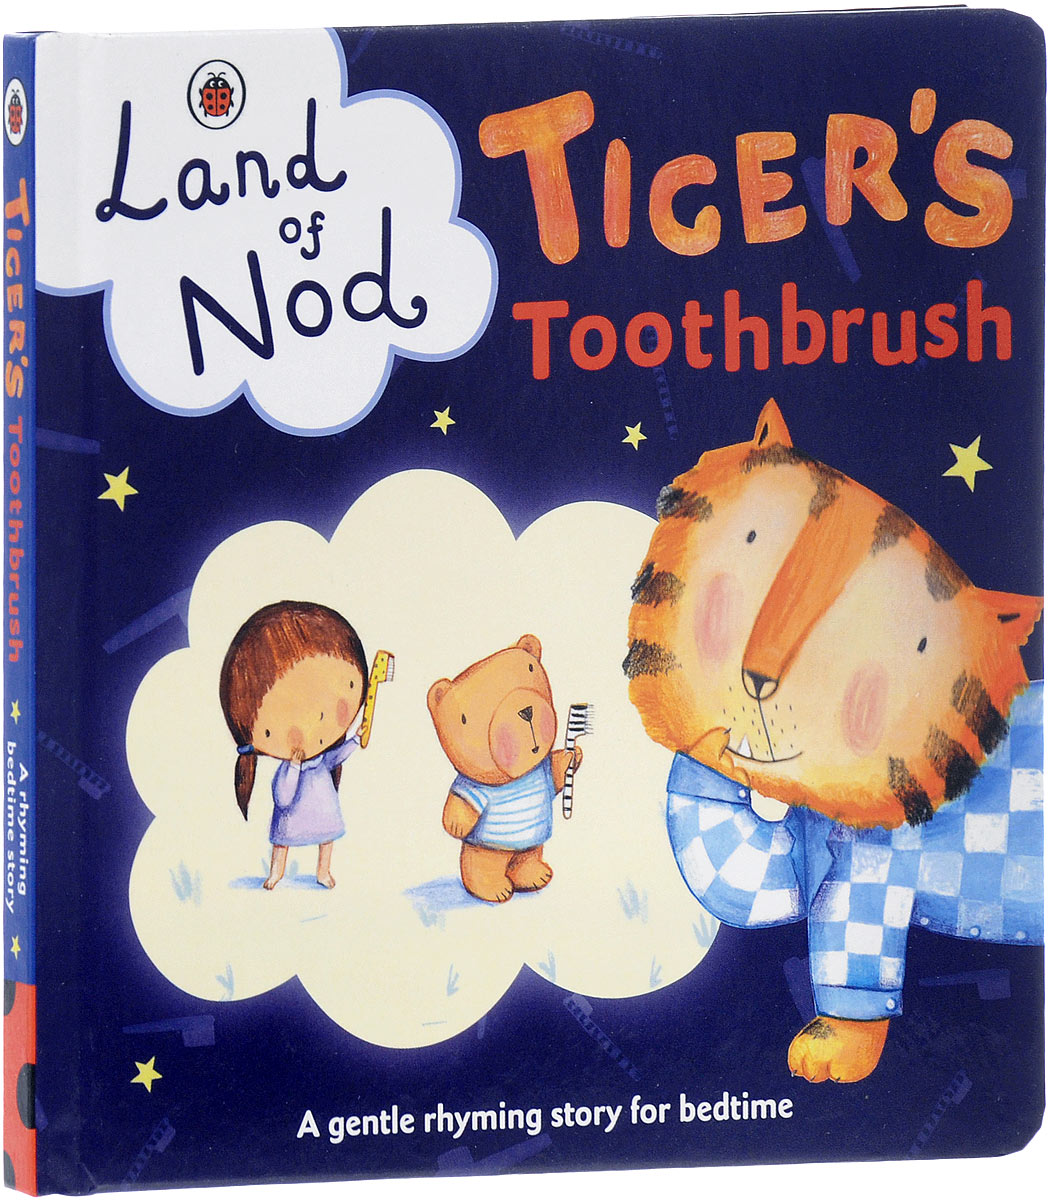 Tiger's Toothbrush me before you